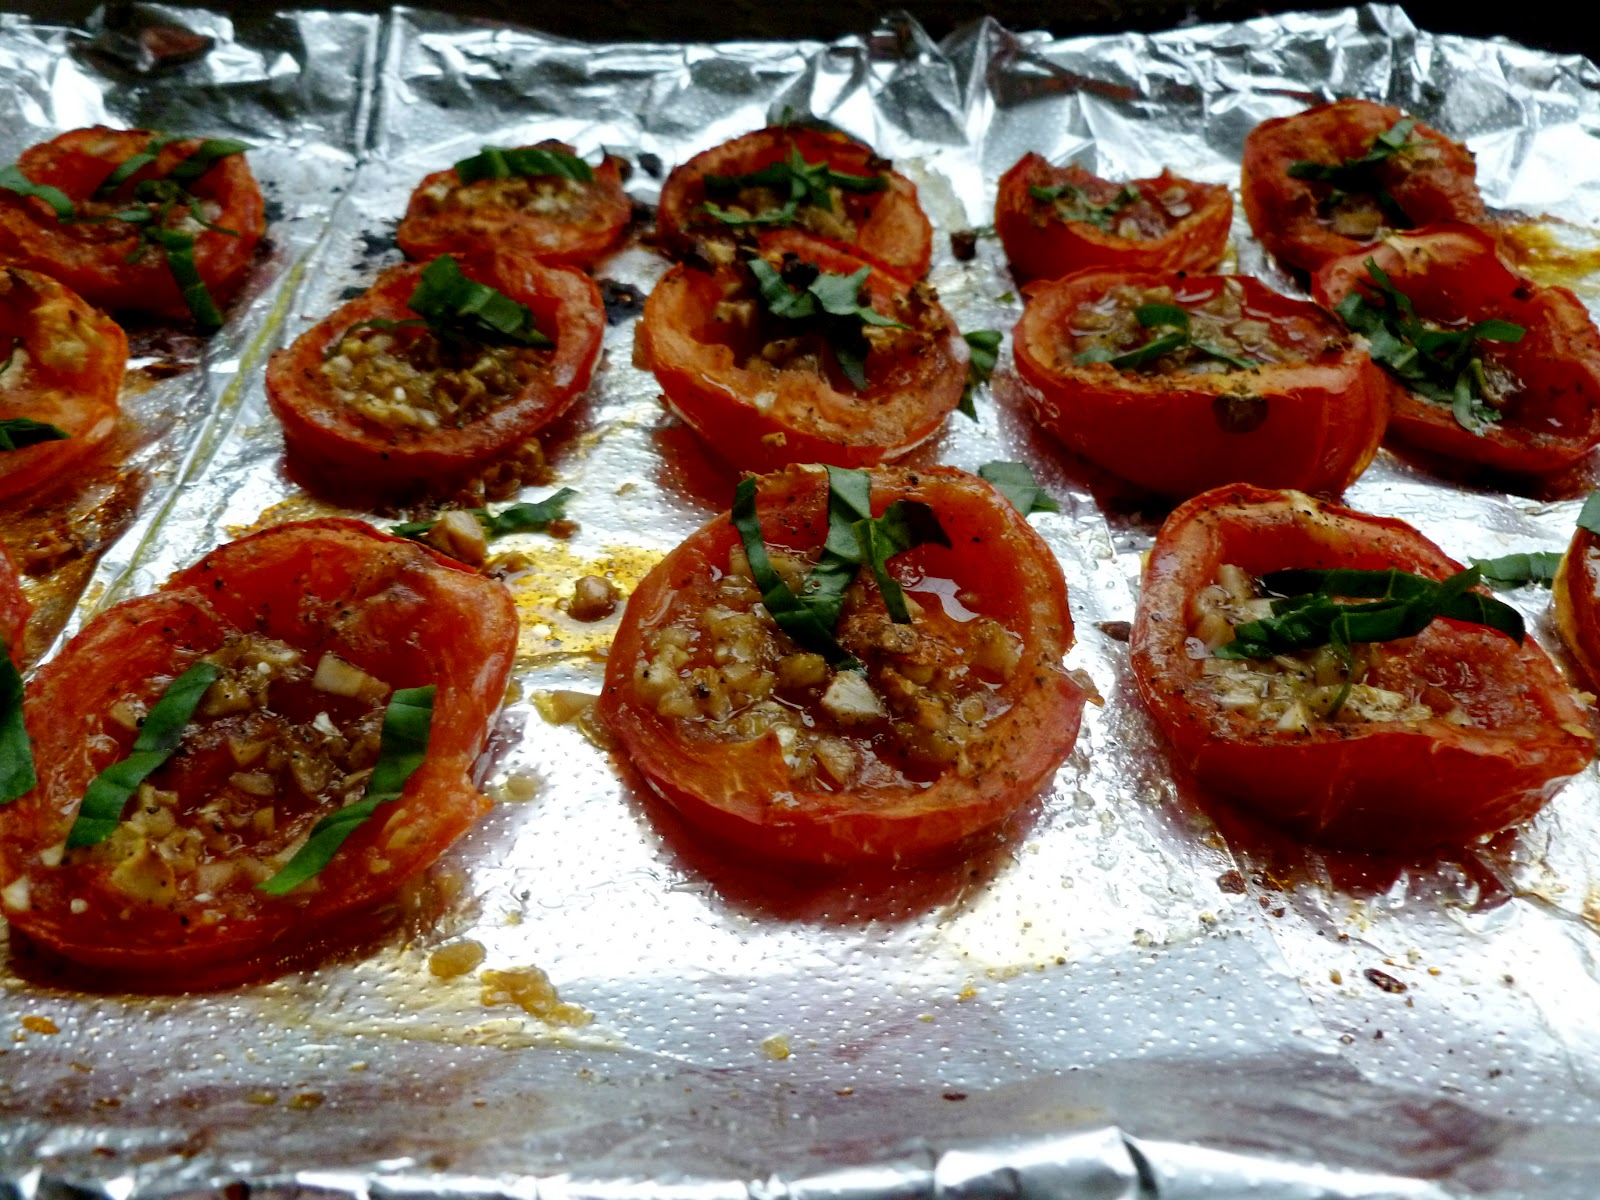 Roasted Tomatoes Ina Garten wandering voyager: cooking with the barefoot contessa: perfect